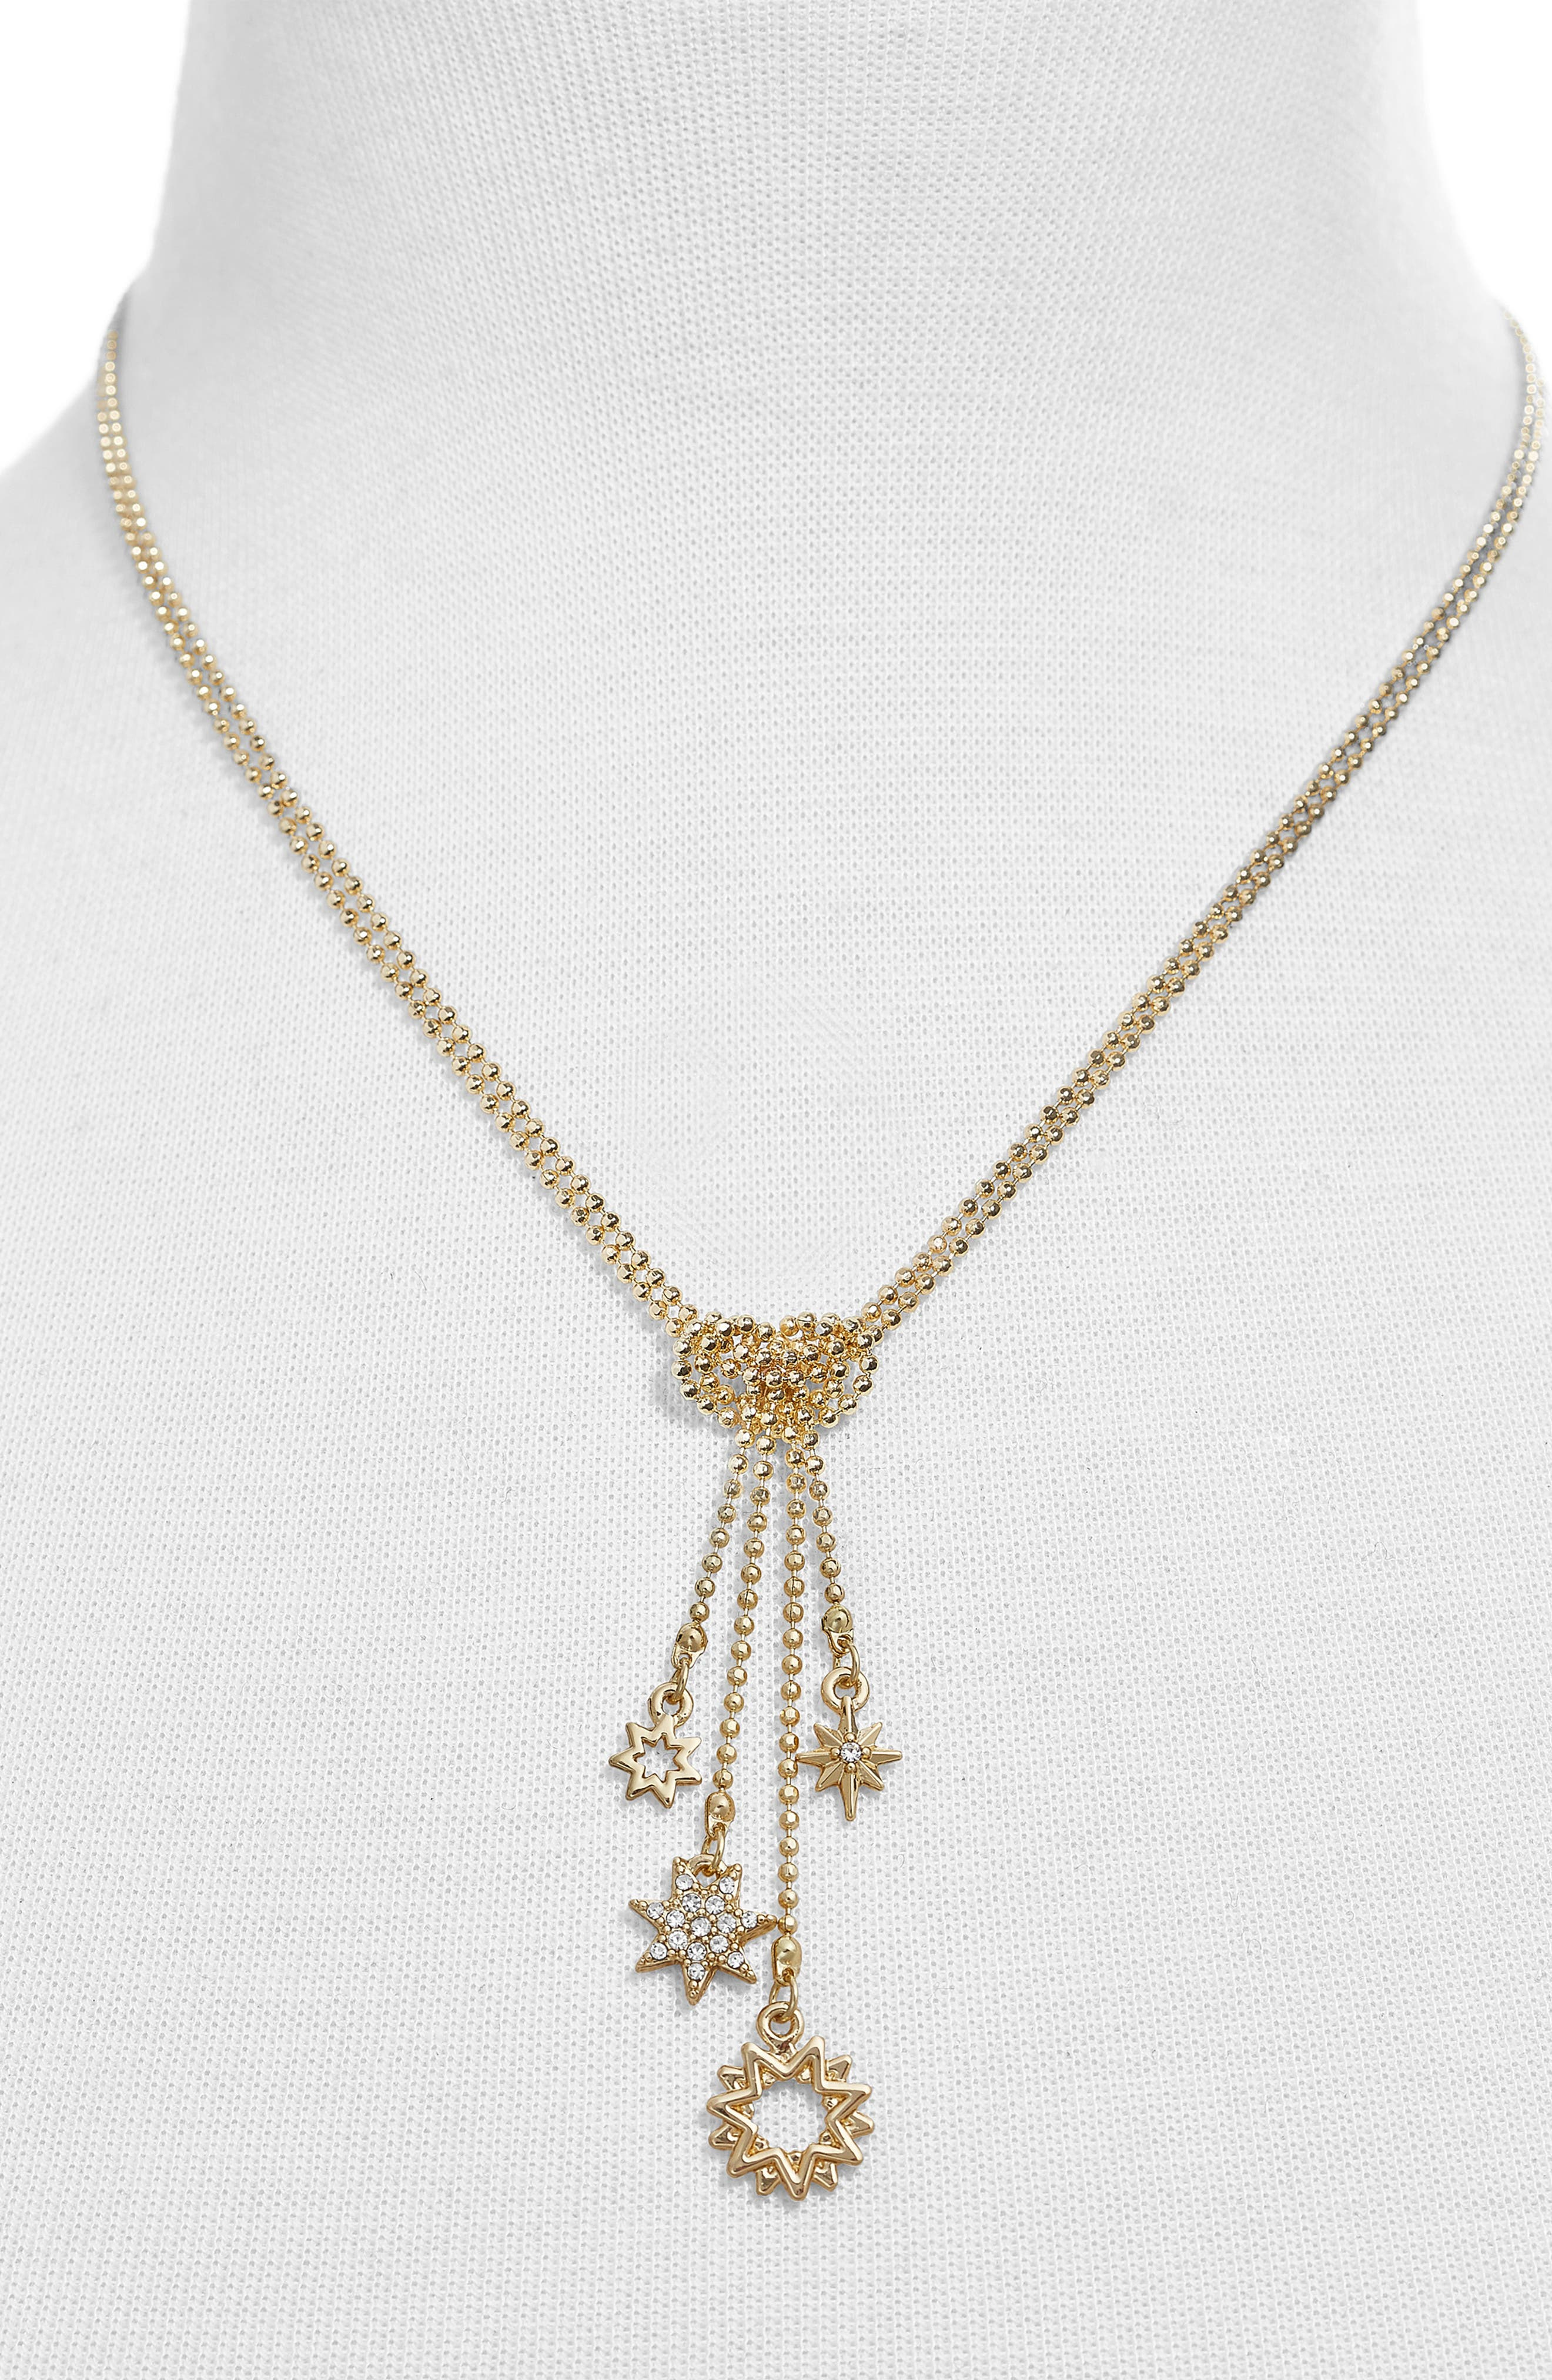 Cressida Star Charms Statement Necklace,                             Alternate thumbnail 2, color,                             GOLD